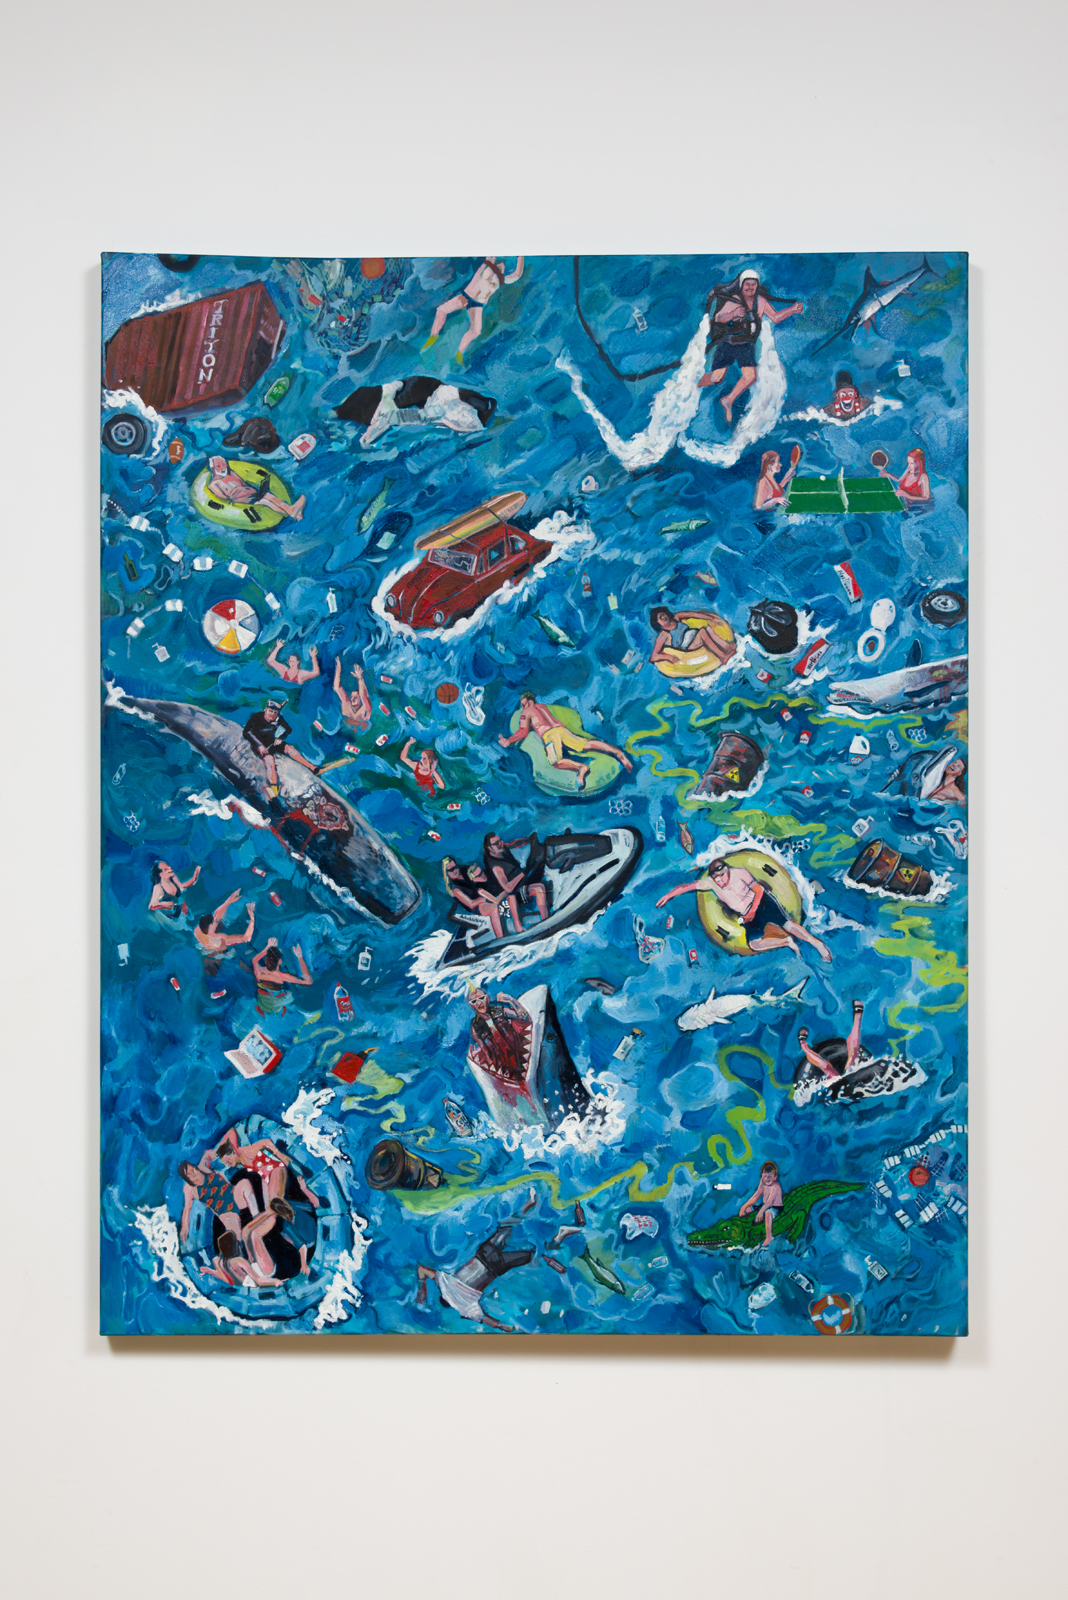 Davey Gant  Oceans of Fun,  2017 oil on canvas  48 x 60 in.